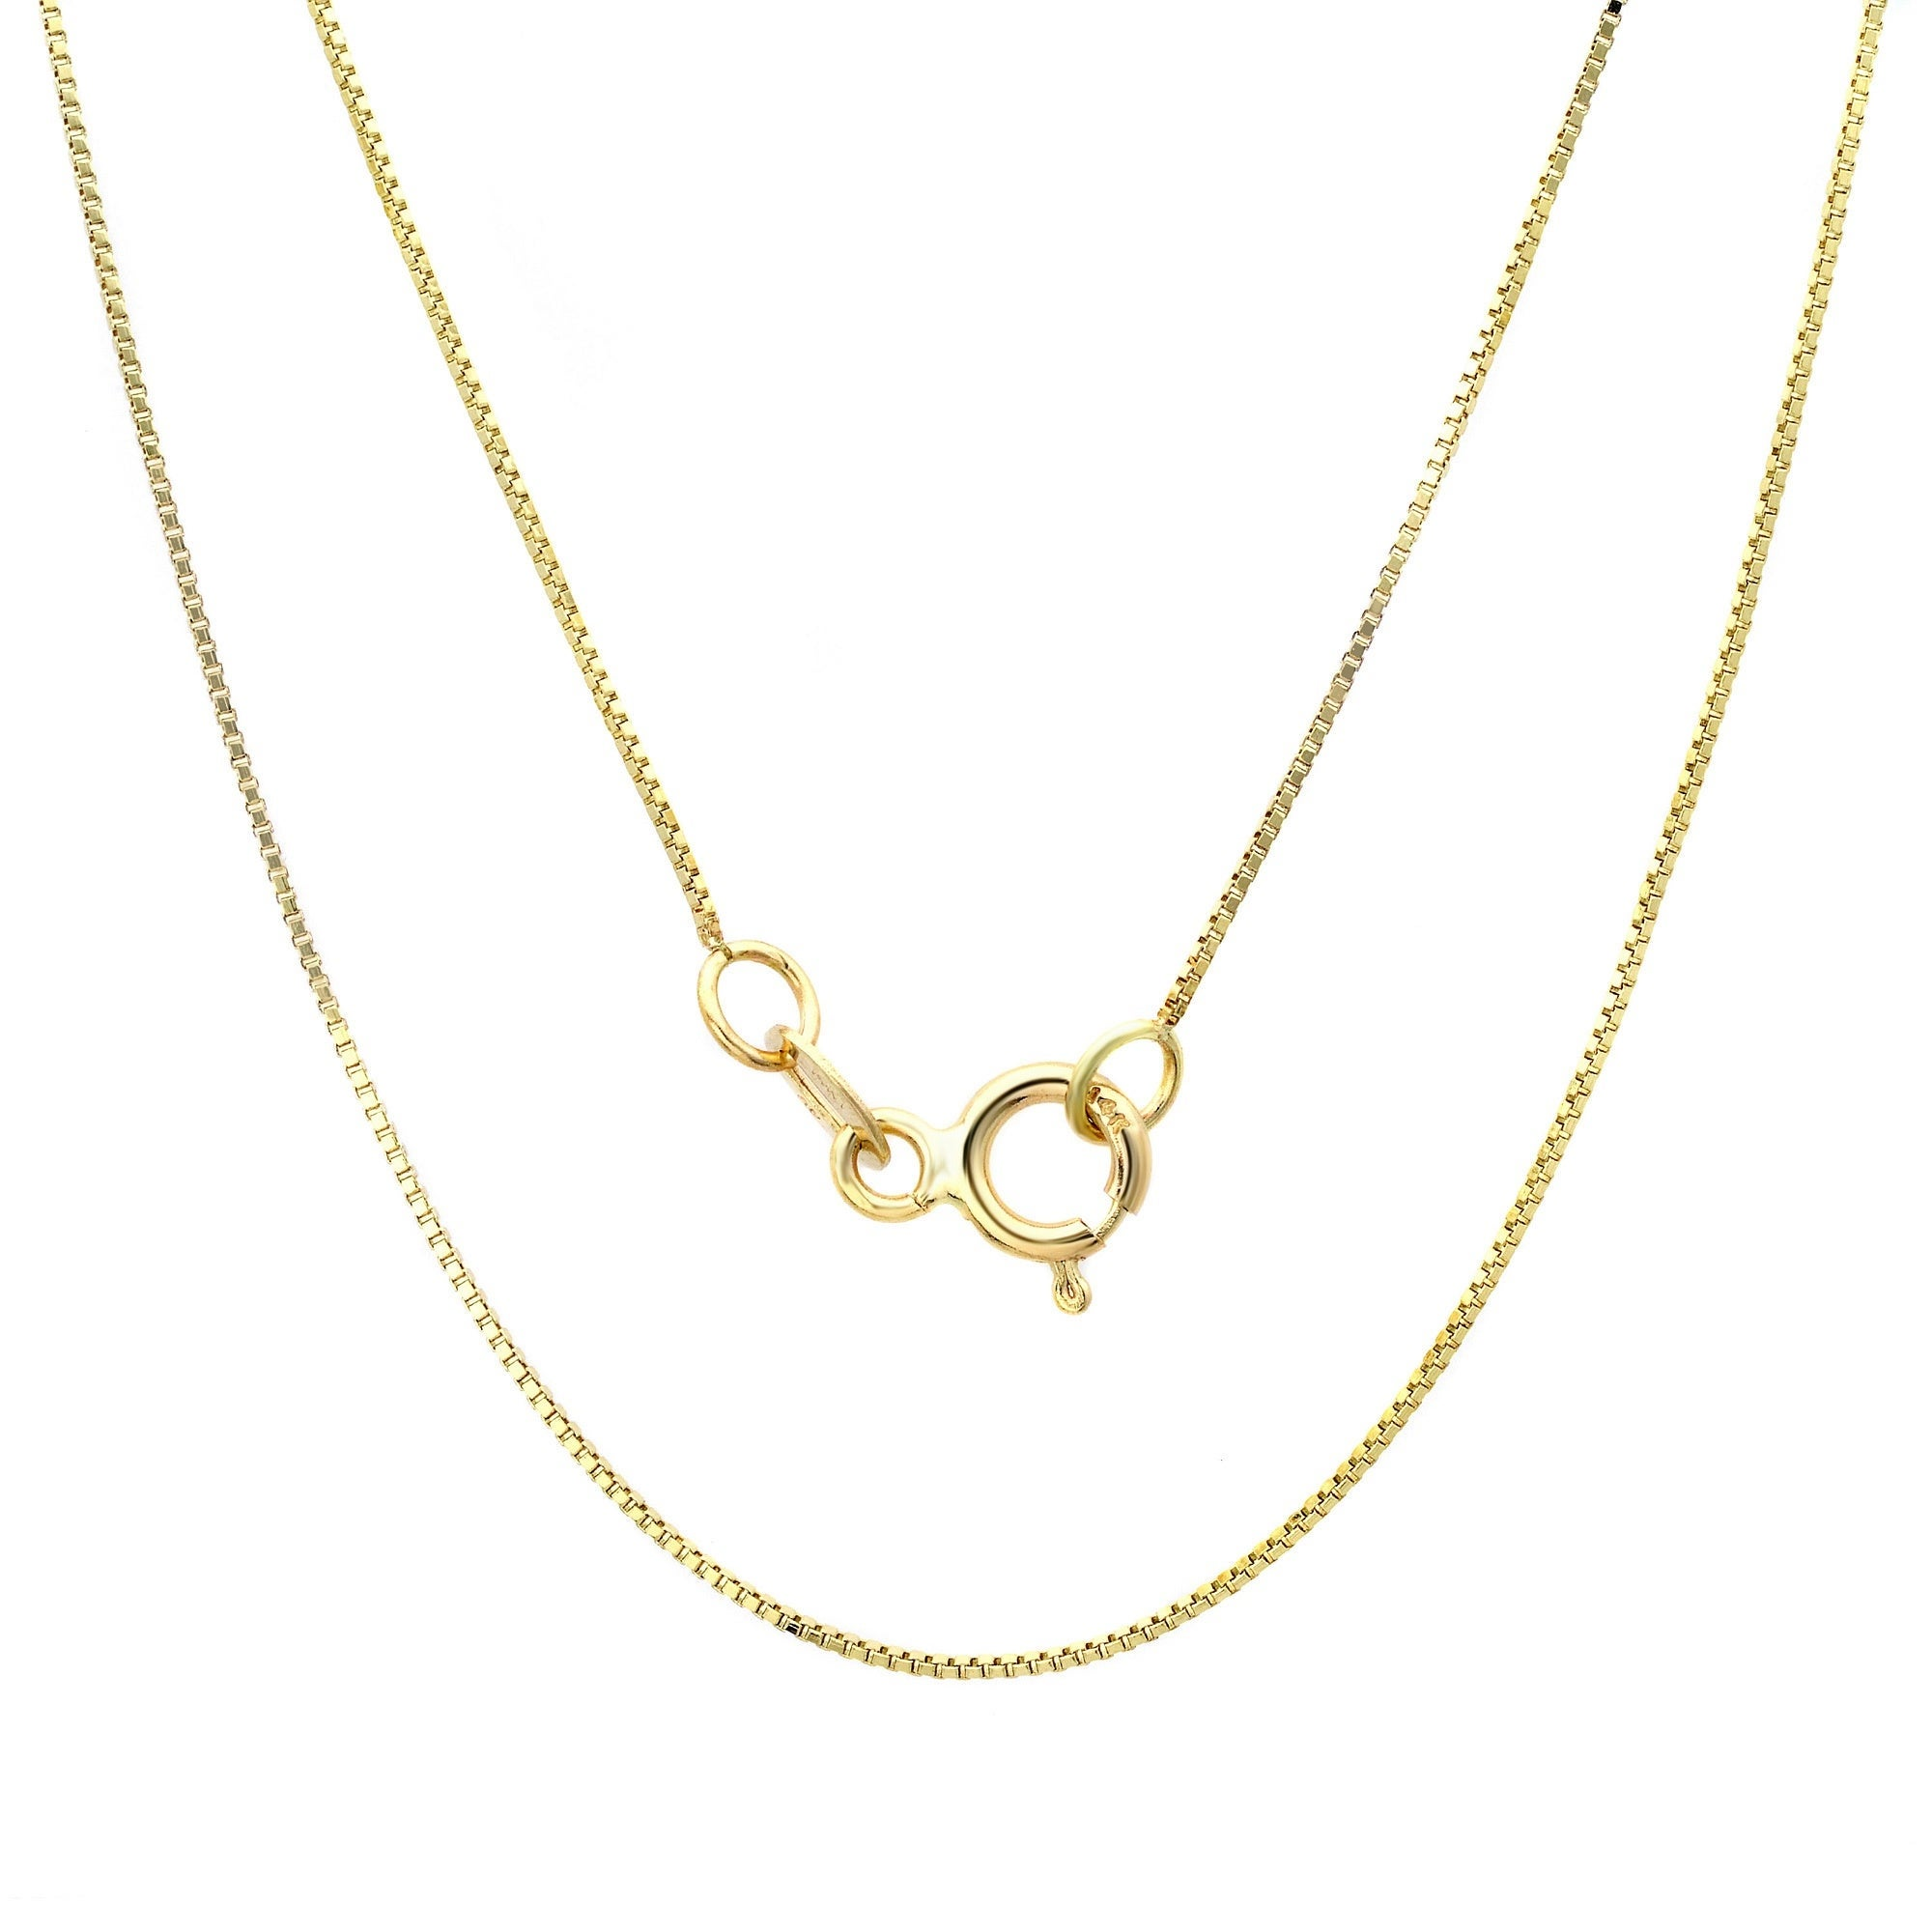 Box or Curb Chain Necklace 14k Yellow Gold Expensive Pendant on a 14K Yellow Gold Rope